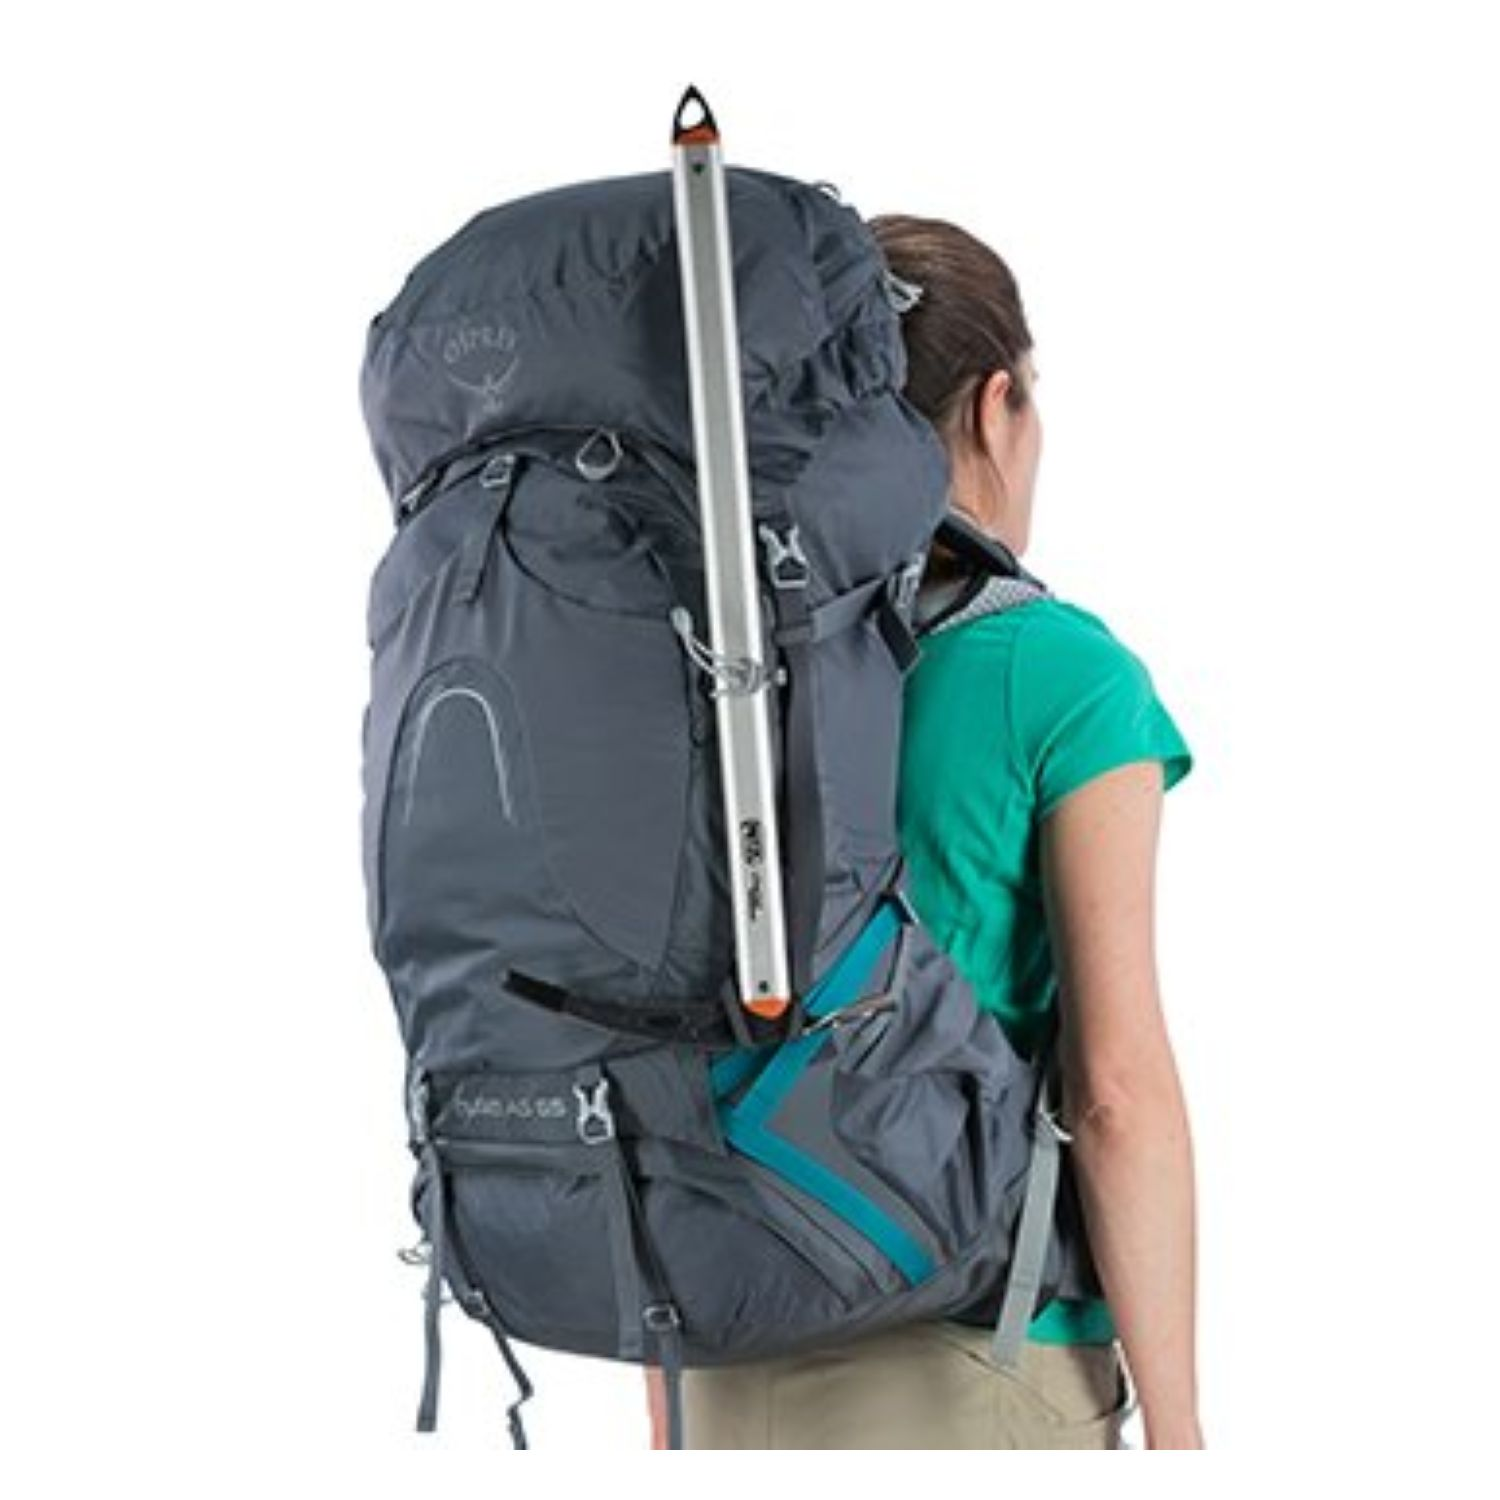 Buy Osprey Aura Ag 65 Backpack Wxs - Vestal Grey in Singapore ... 2ac5966c6b